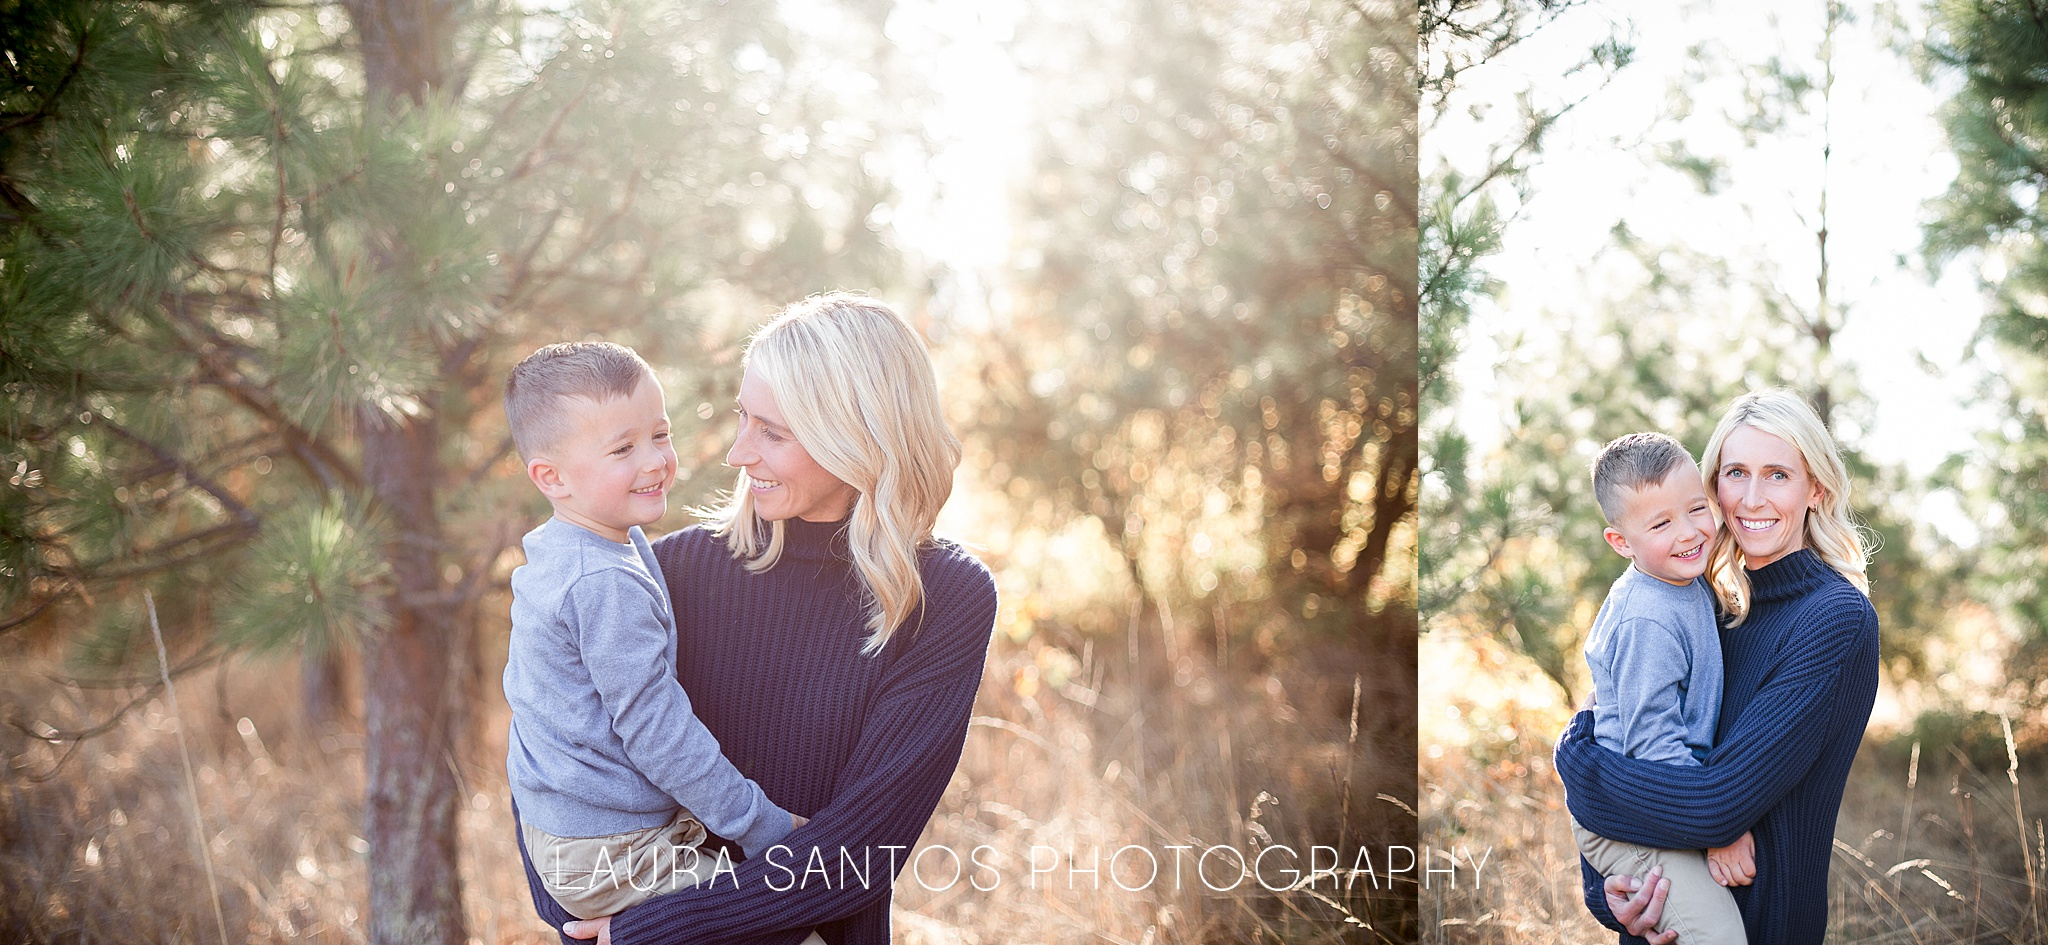 Laura Santos Photography Portland Oregon Family Photographer_0821.jpg